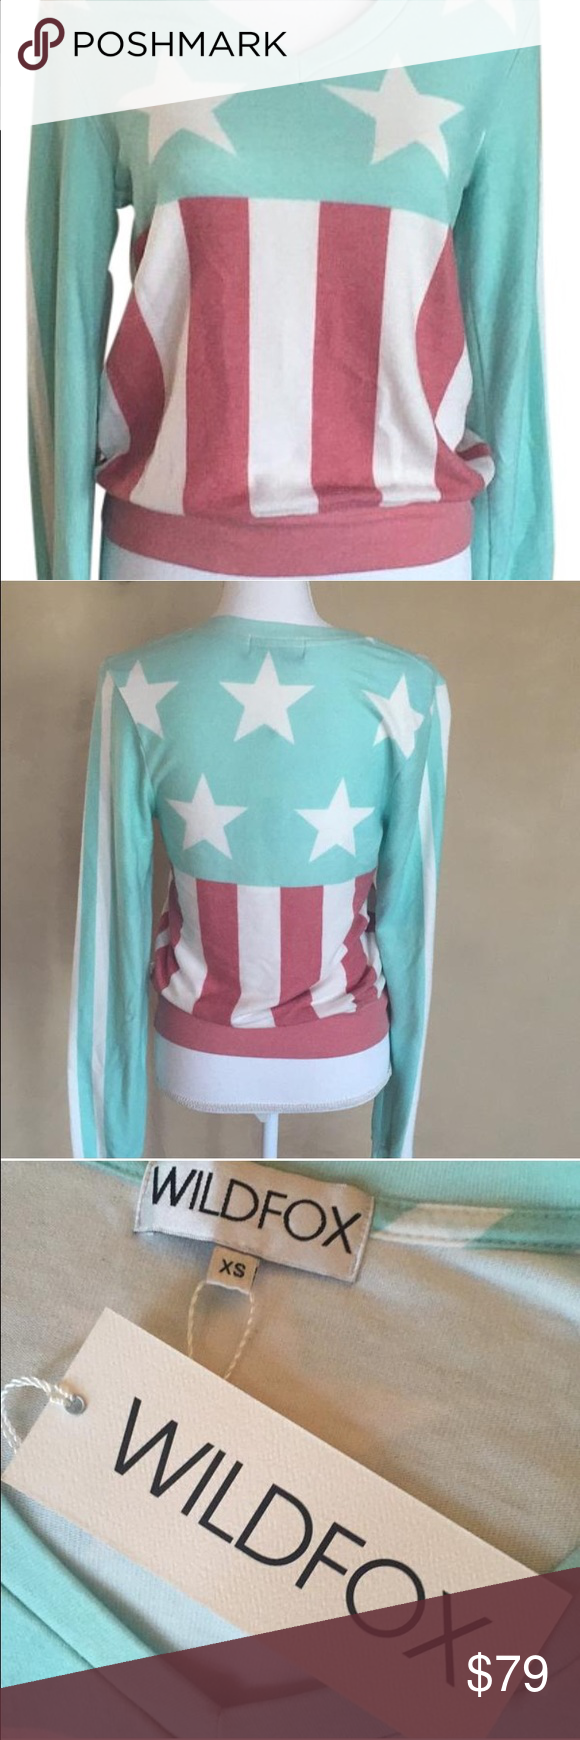 patriotic wildfox sweatshirt just in time for 4th with this super soft red, white, and red wilfox sweatshirt  Wildfox Sweaters V-Necks